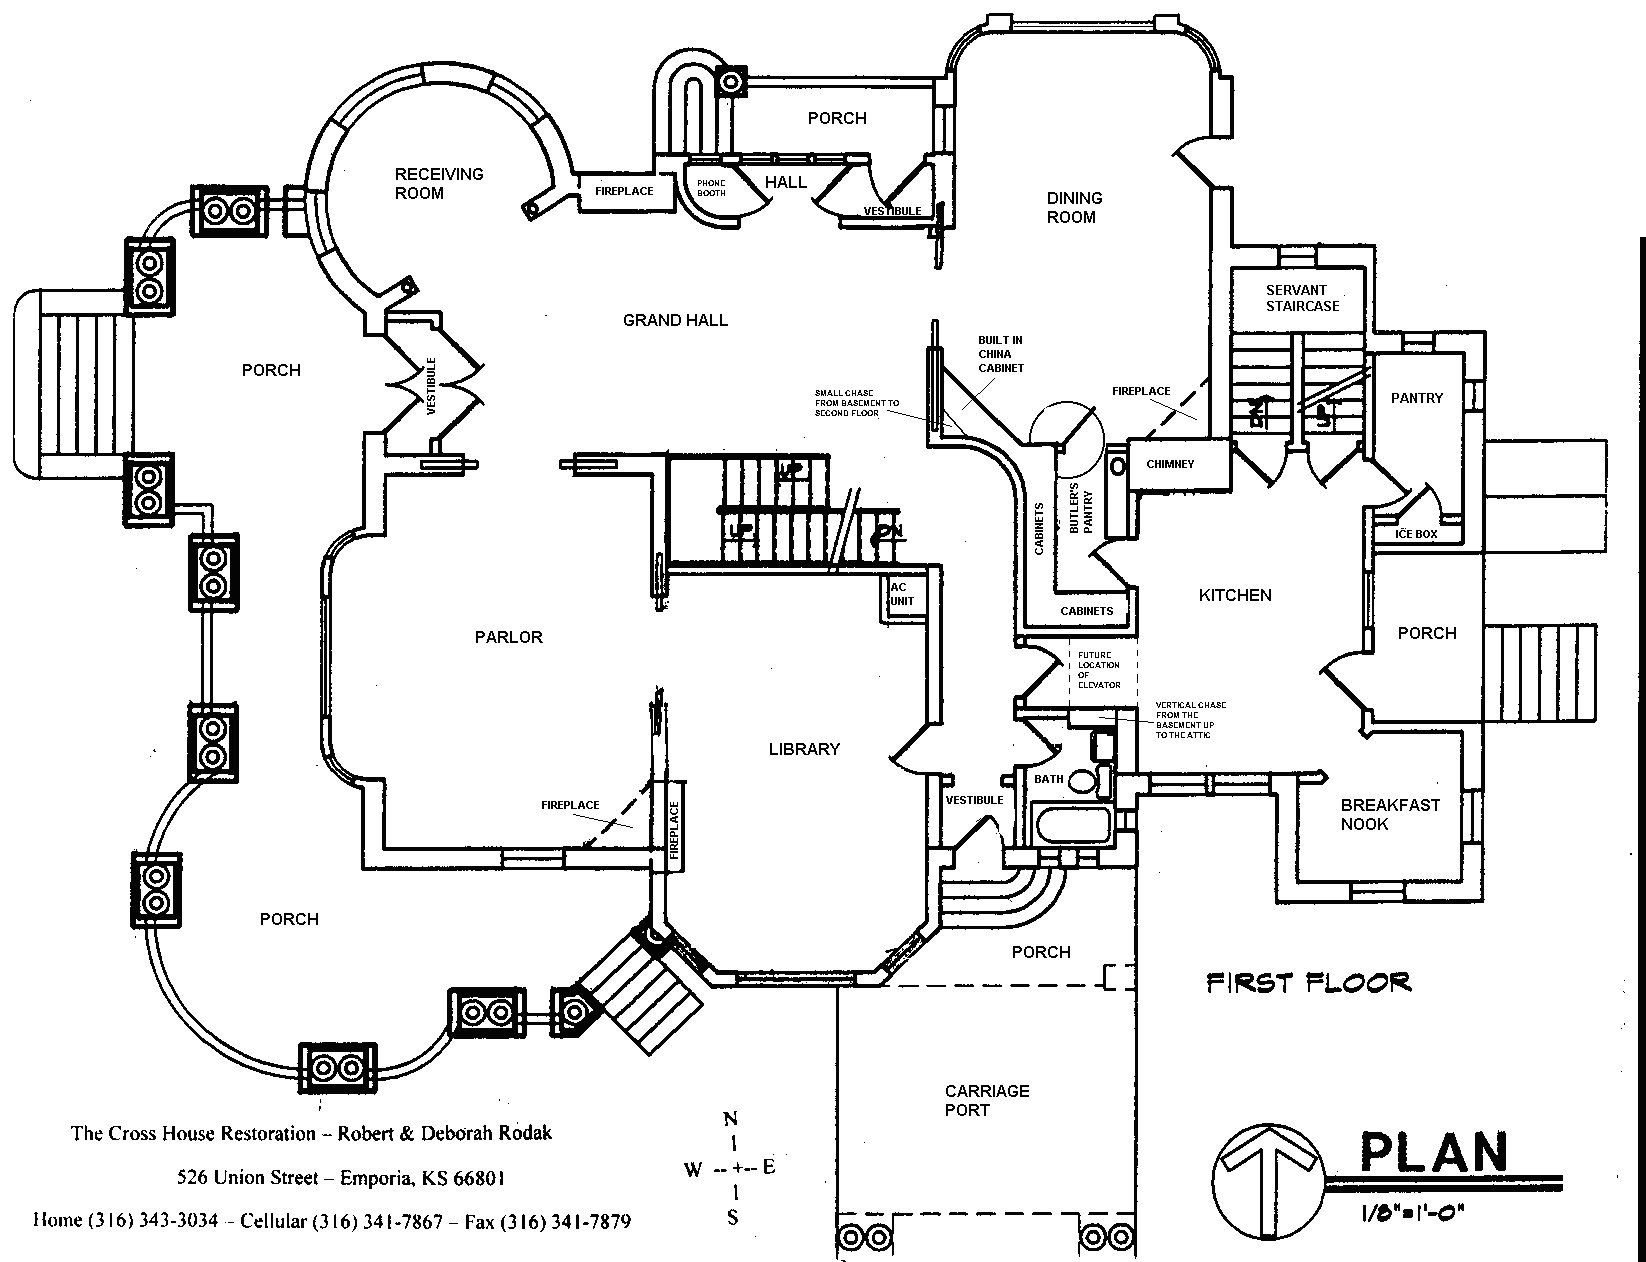 Cross house restoration floor plans and blueprints for Blueprint builder free